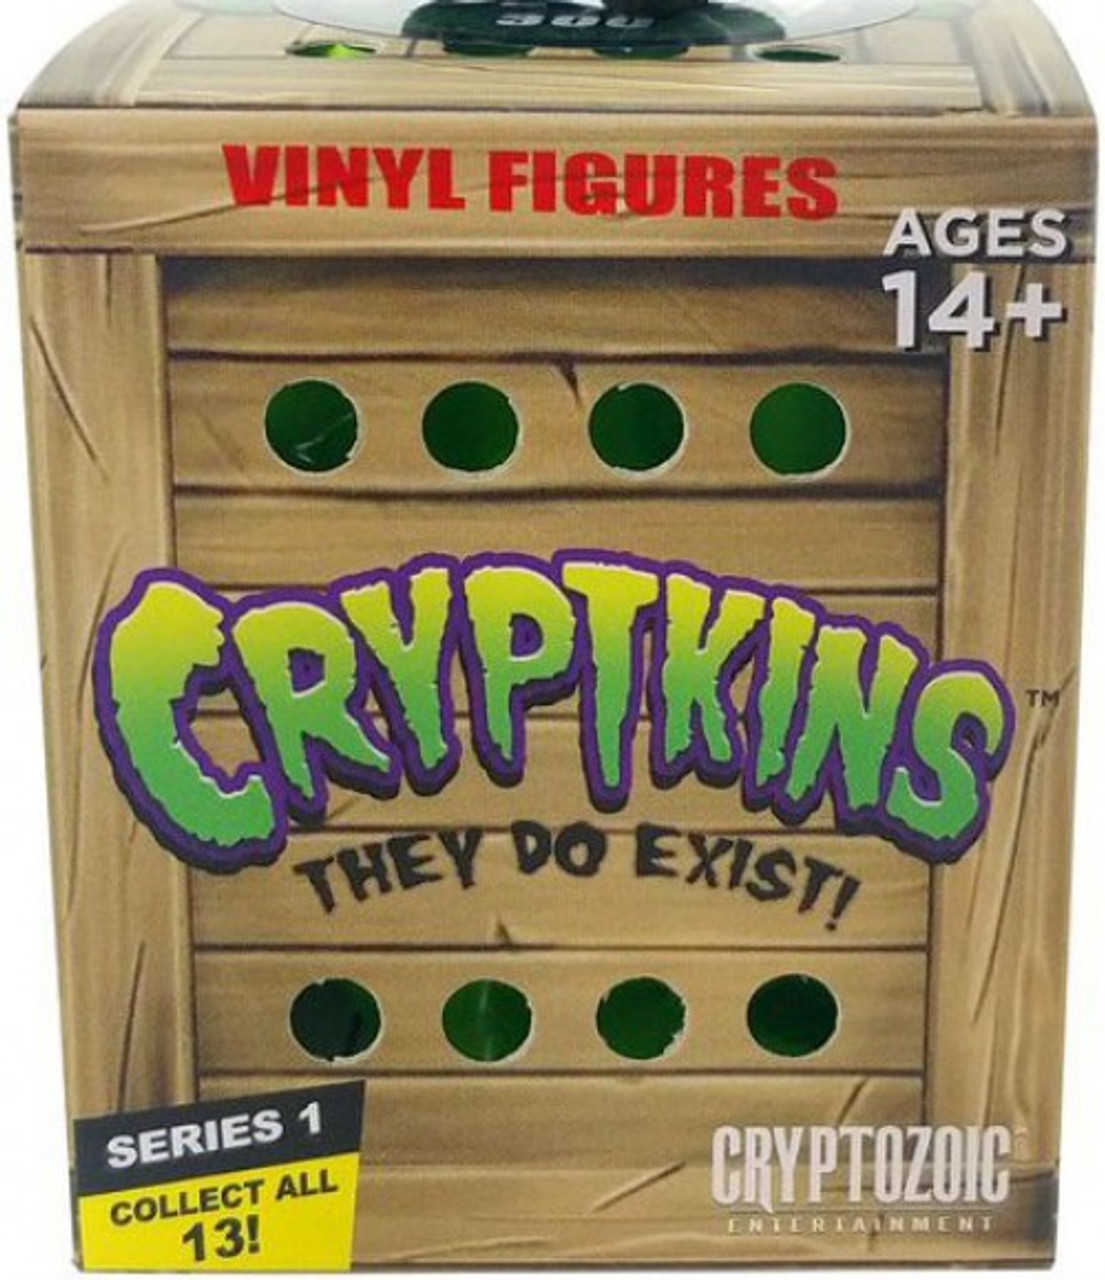 Cryptkins Series 1 They Do Exist Vinyl Figures Chupacabra